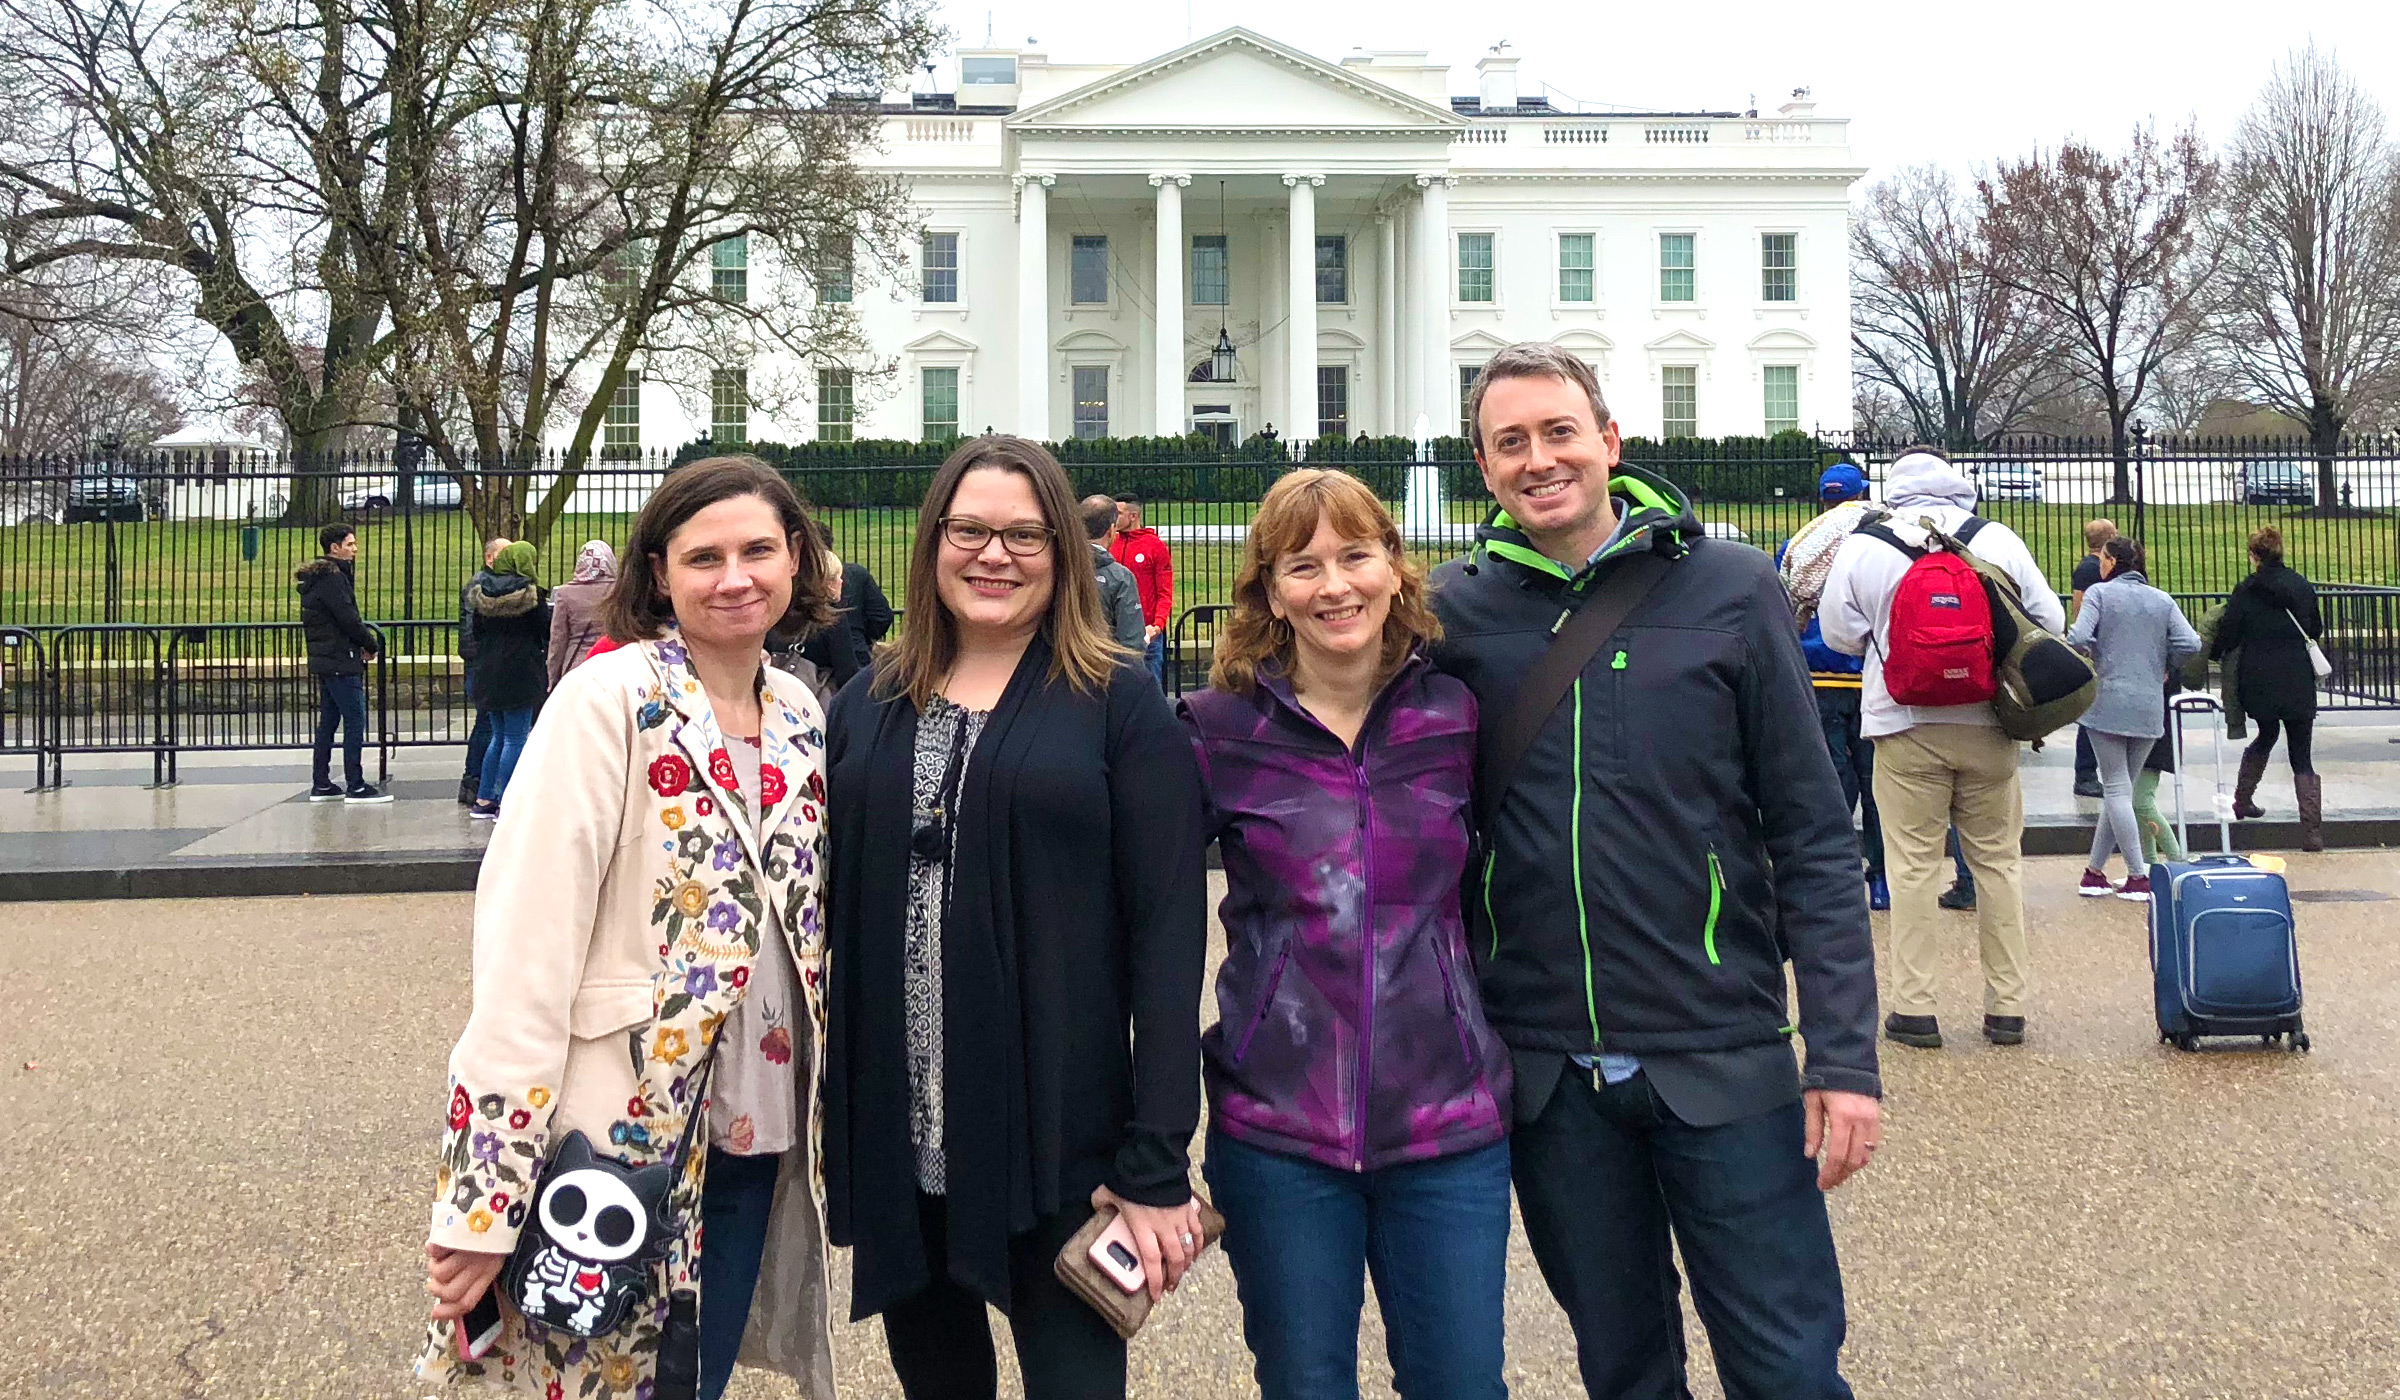 Narcolepsy advocates standing in front of the White House.